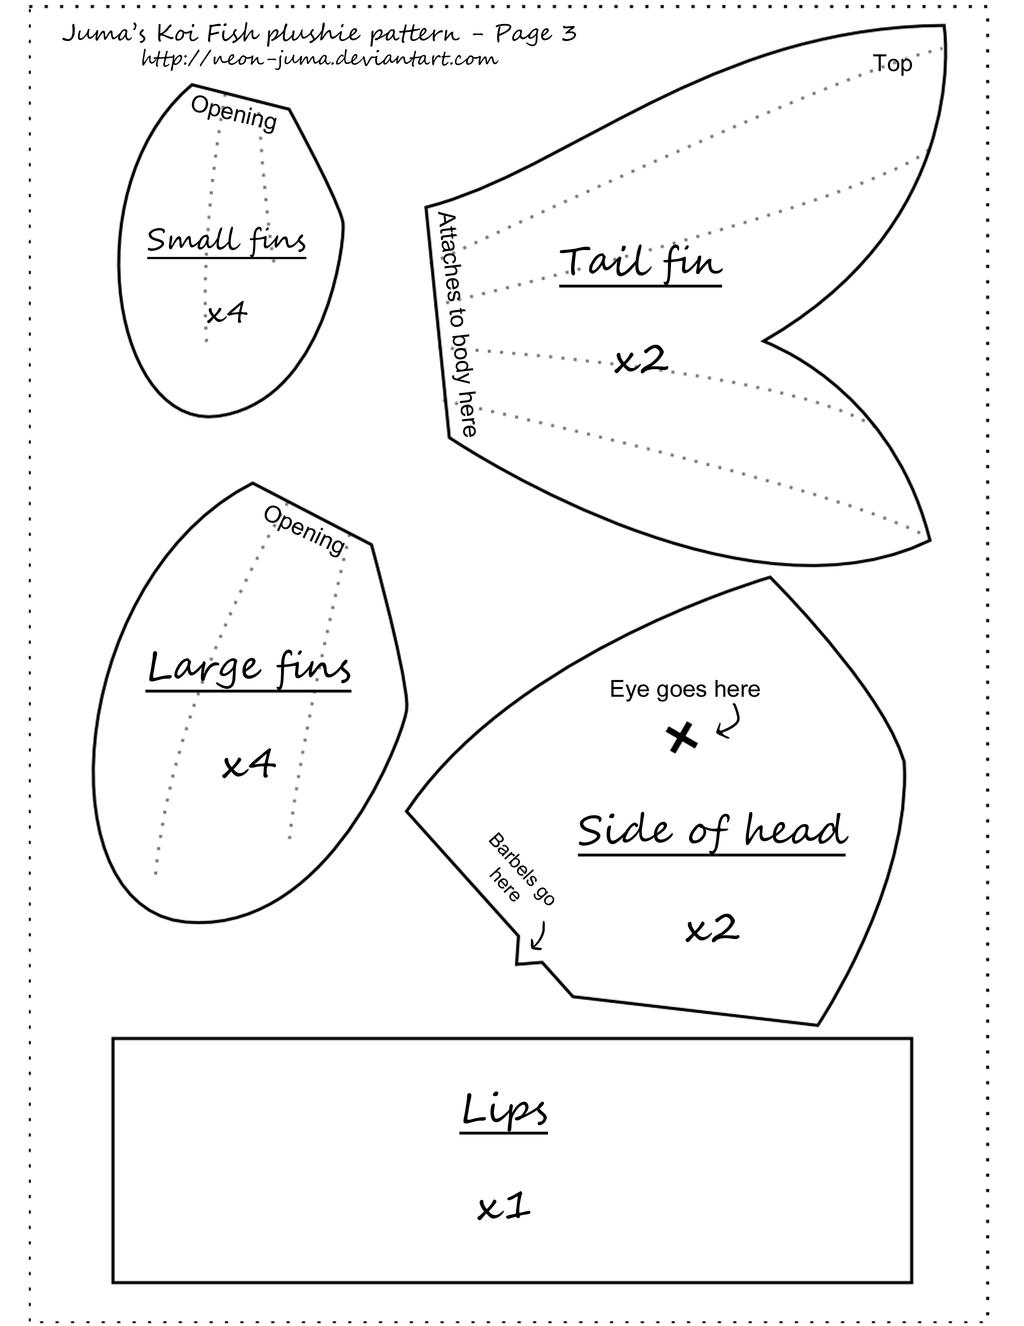 Koi plushie pattern page 3 by neon juma on deviantart for Ang pao fish tutorial